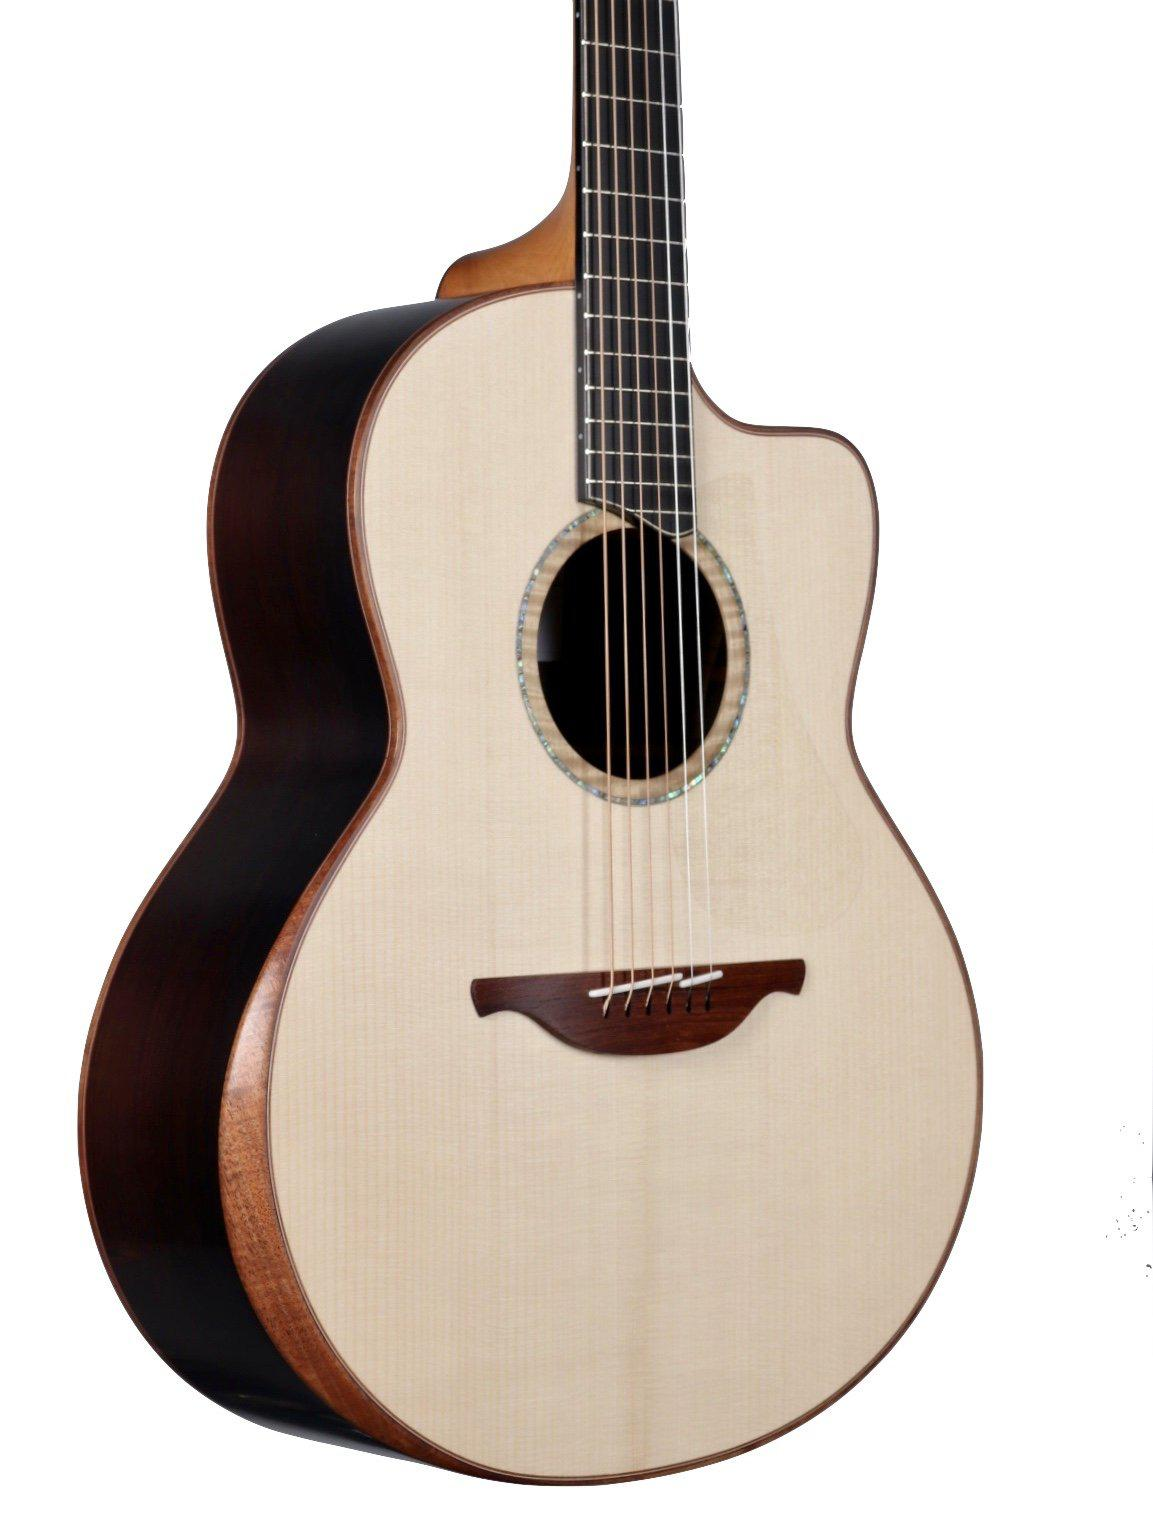 Lowden F50c Adirondack Spruce / Brazilian Rosewood with Bevel - Lowden Guitars - Heartbreaker Guitars